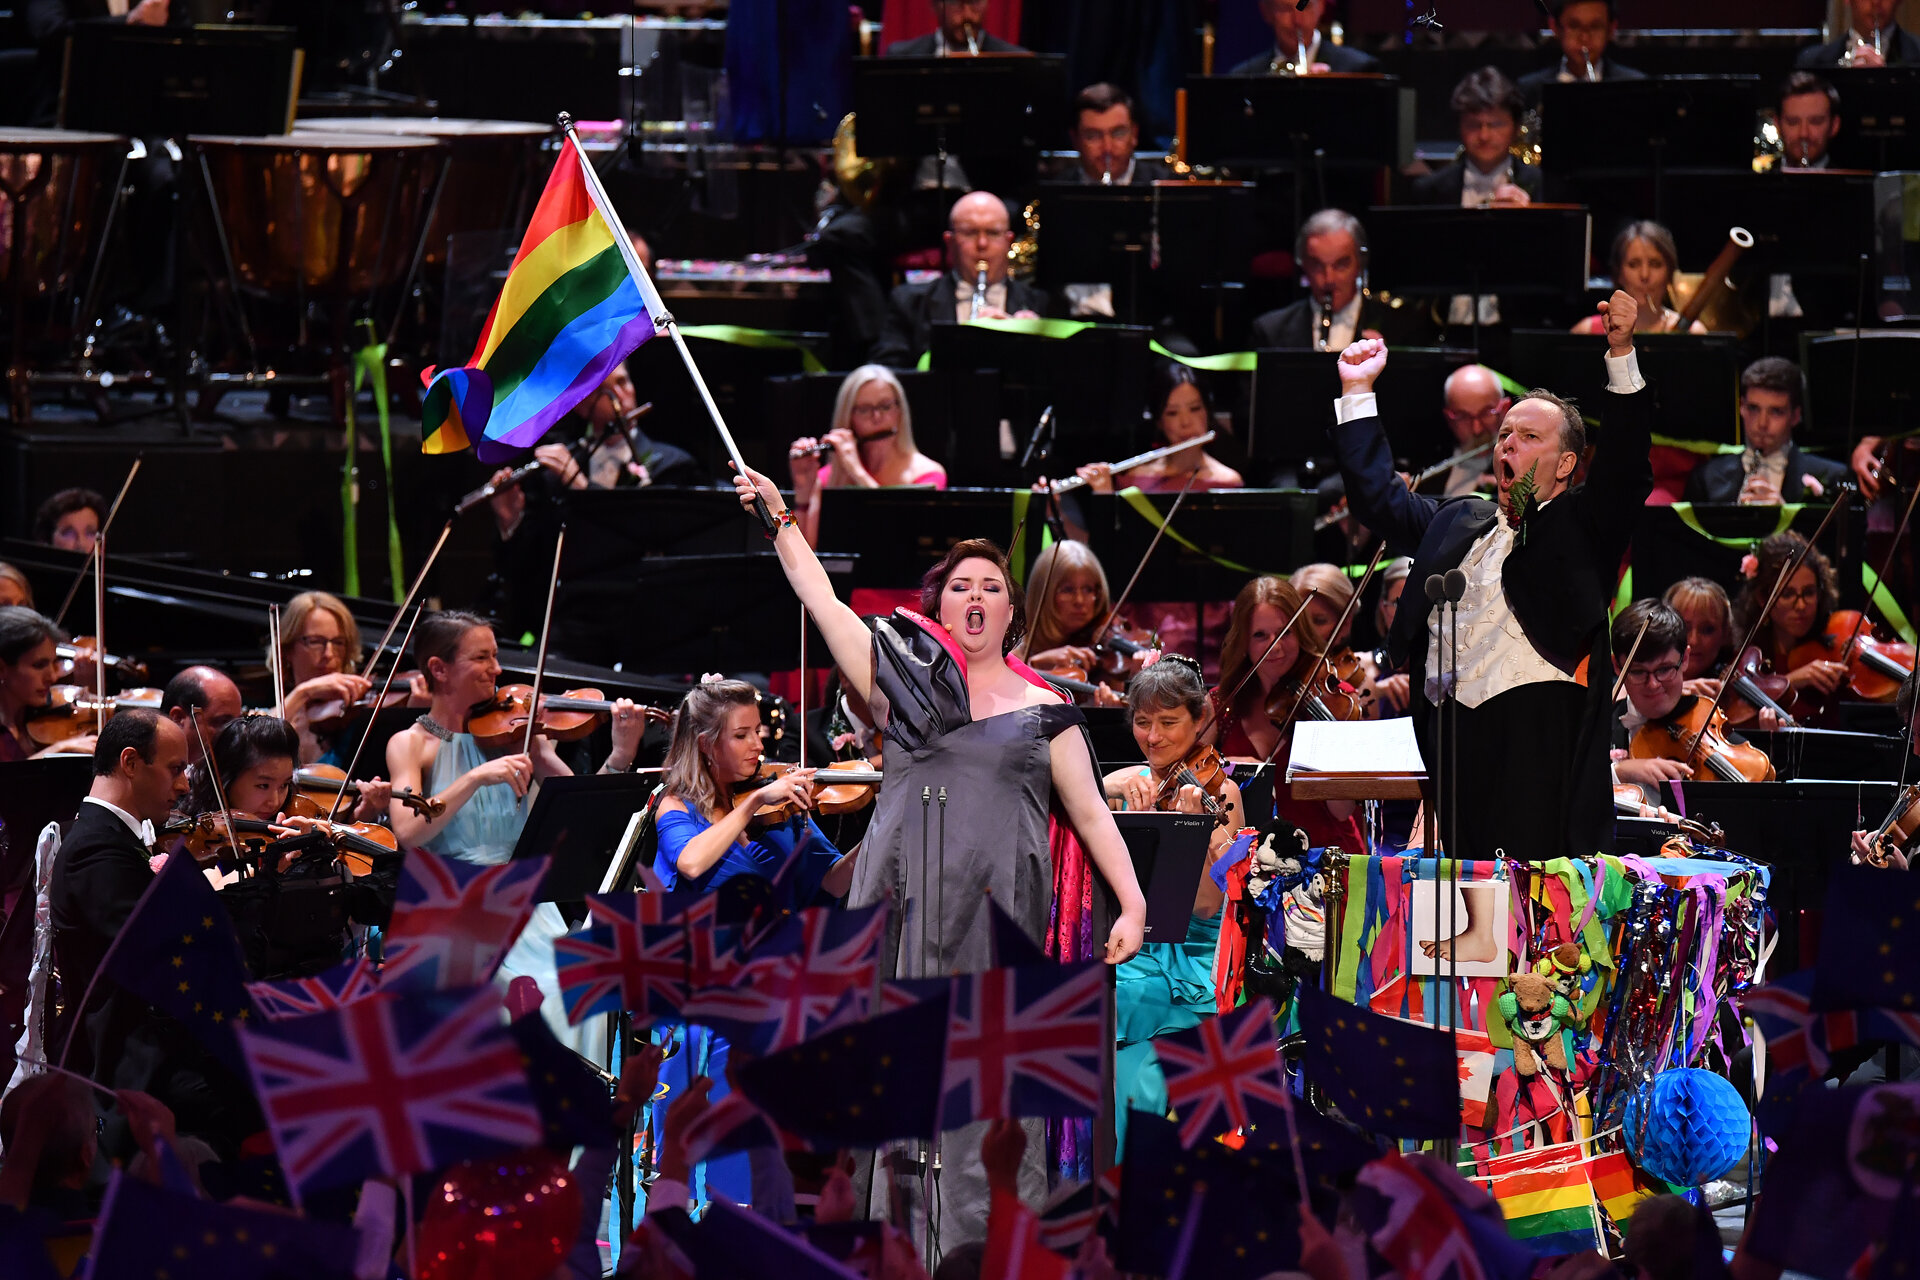 Jamie lifts the Pride Flag aloft at Last Night of the Proms. (Photo by Chris Christodoulou)